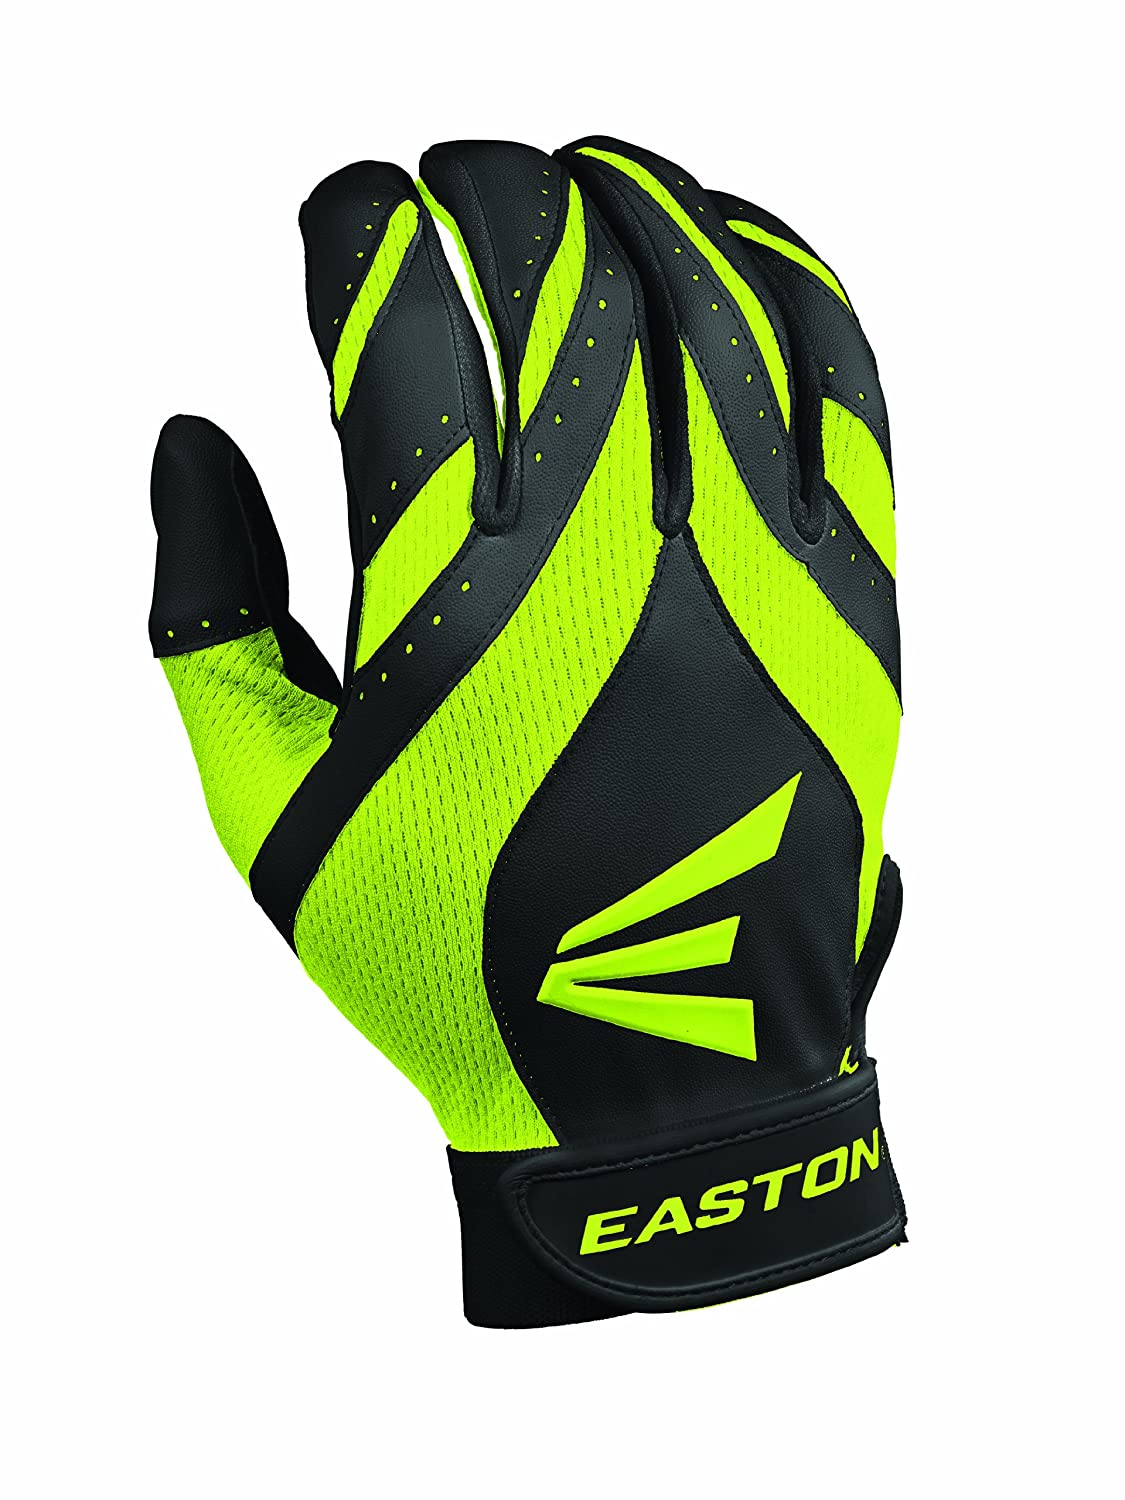 Easton Youth Synergy II Fastpitch Batting Handschuhe (Medium, Schwarz/Optik) bestellen